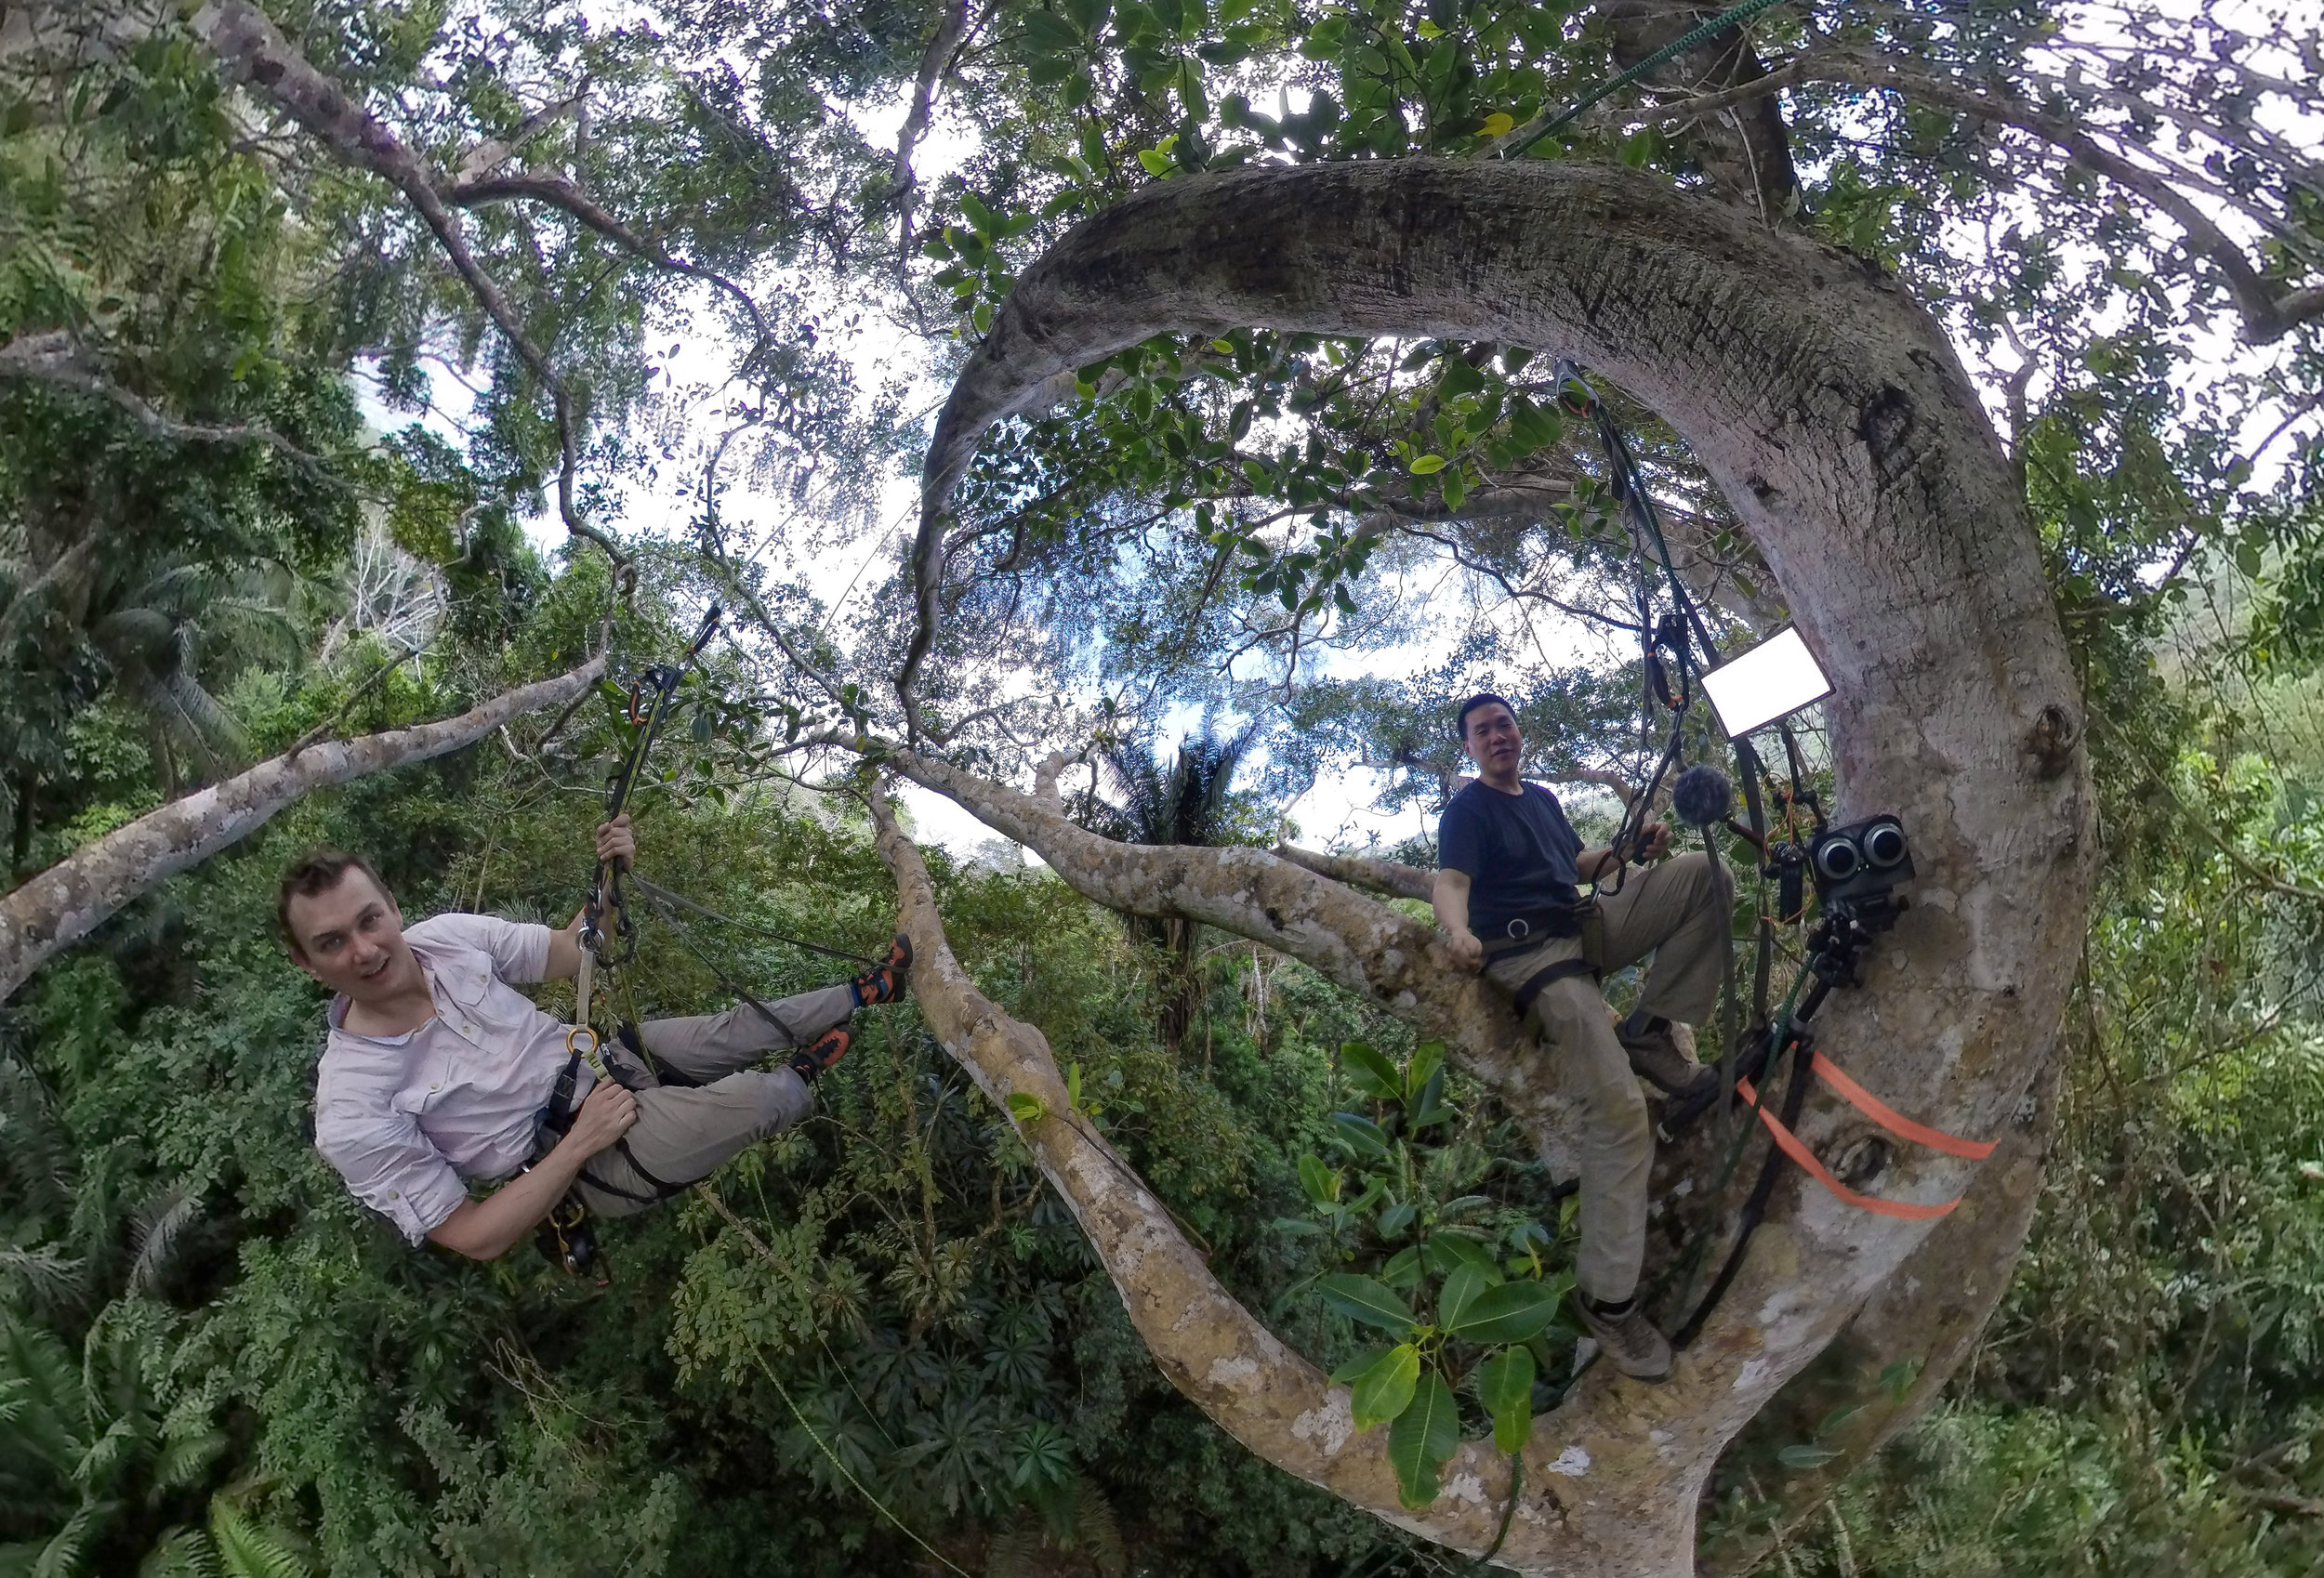 Hanging out nearly 100' high in a fig tree with Dr. Bryson Voirin